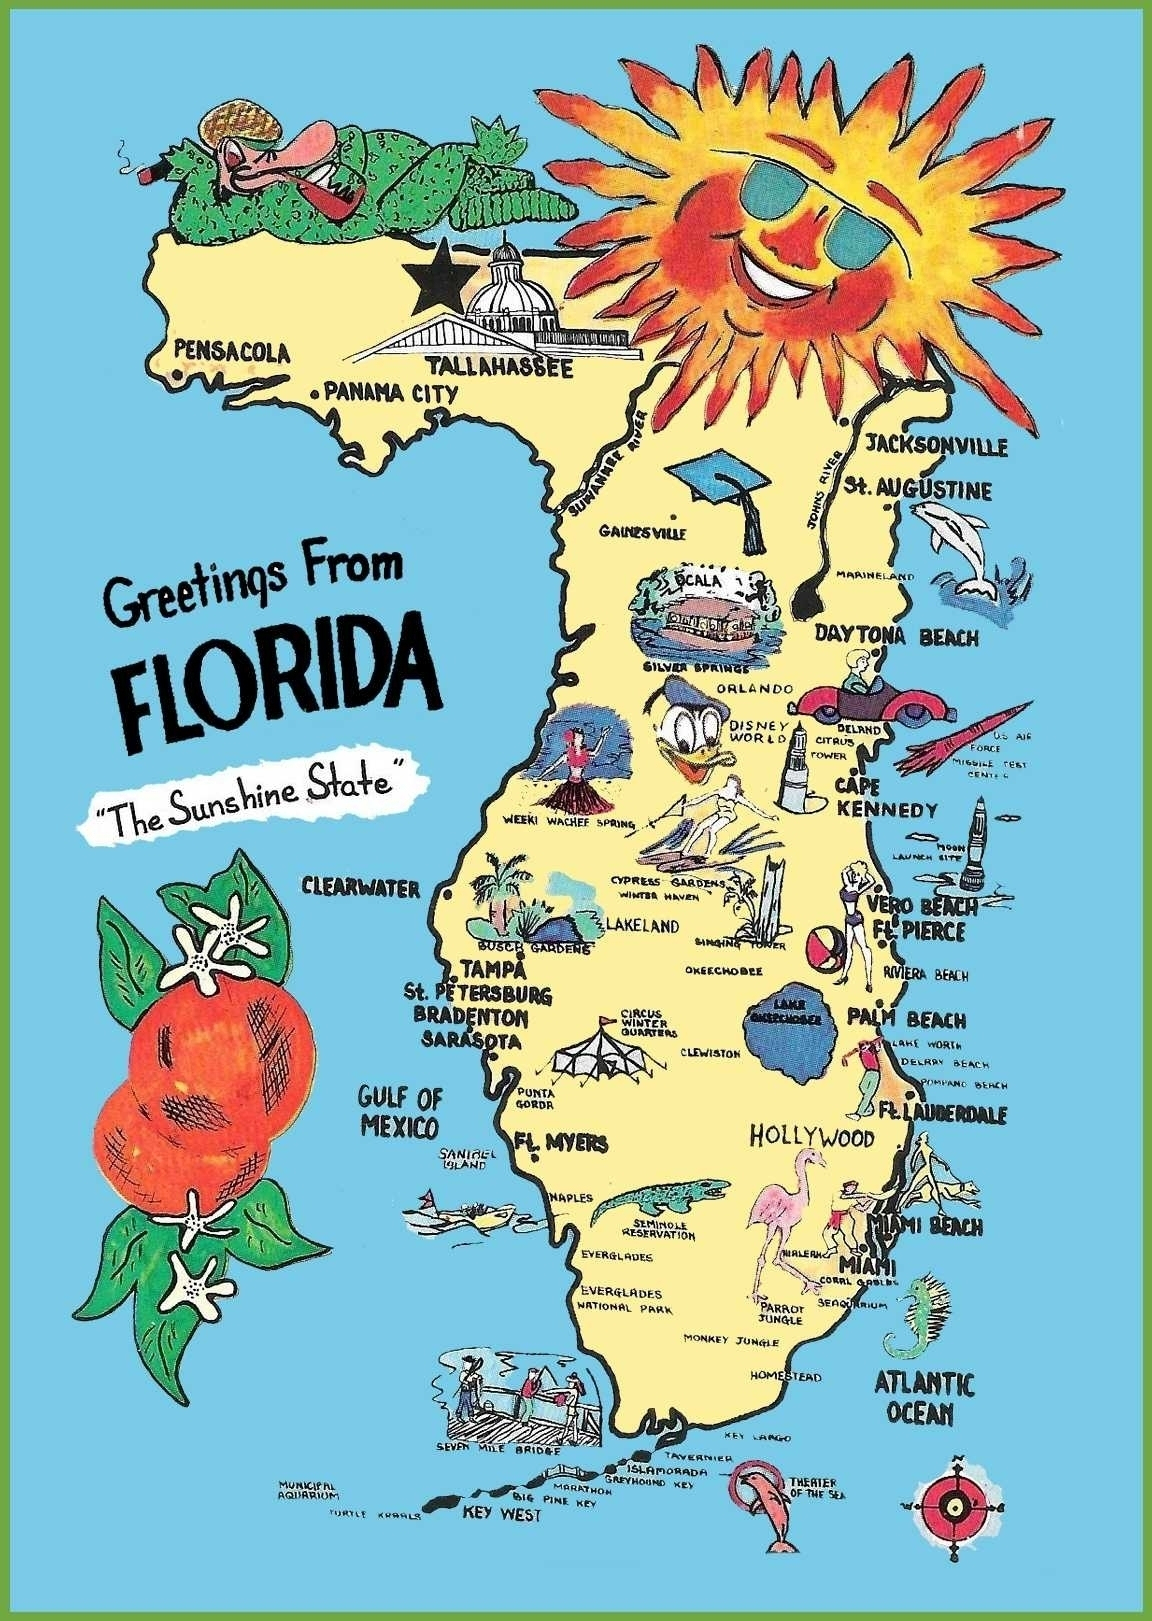 Florida Tourist Attractions Map Florida Attractions Maps And Travel - Florida Attractions Map